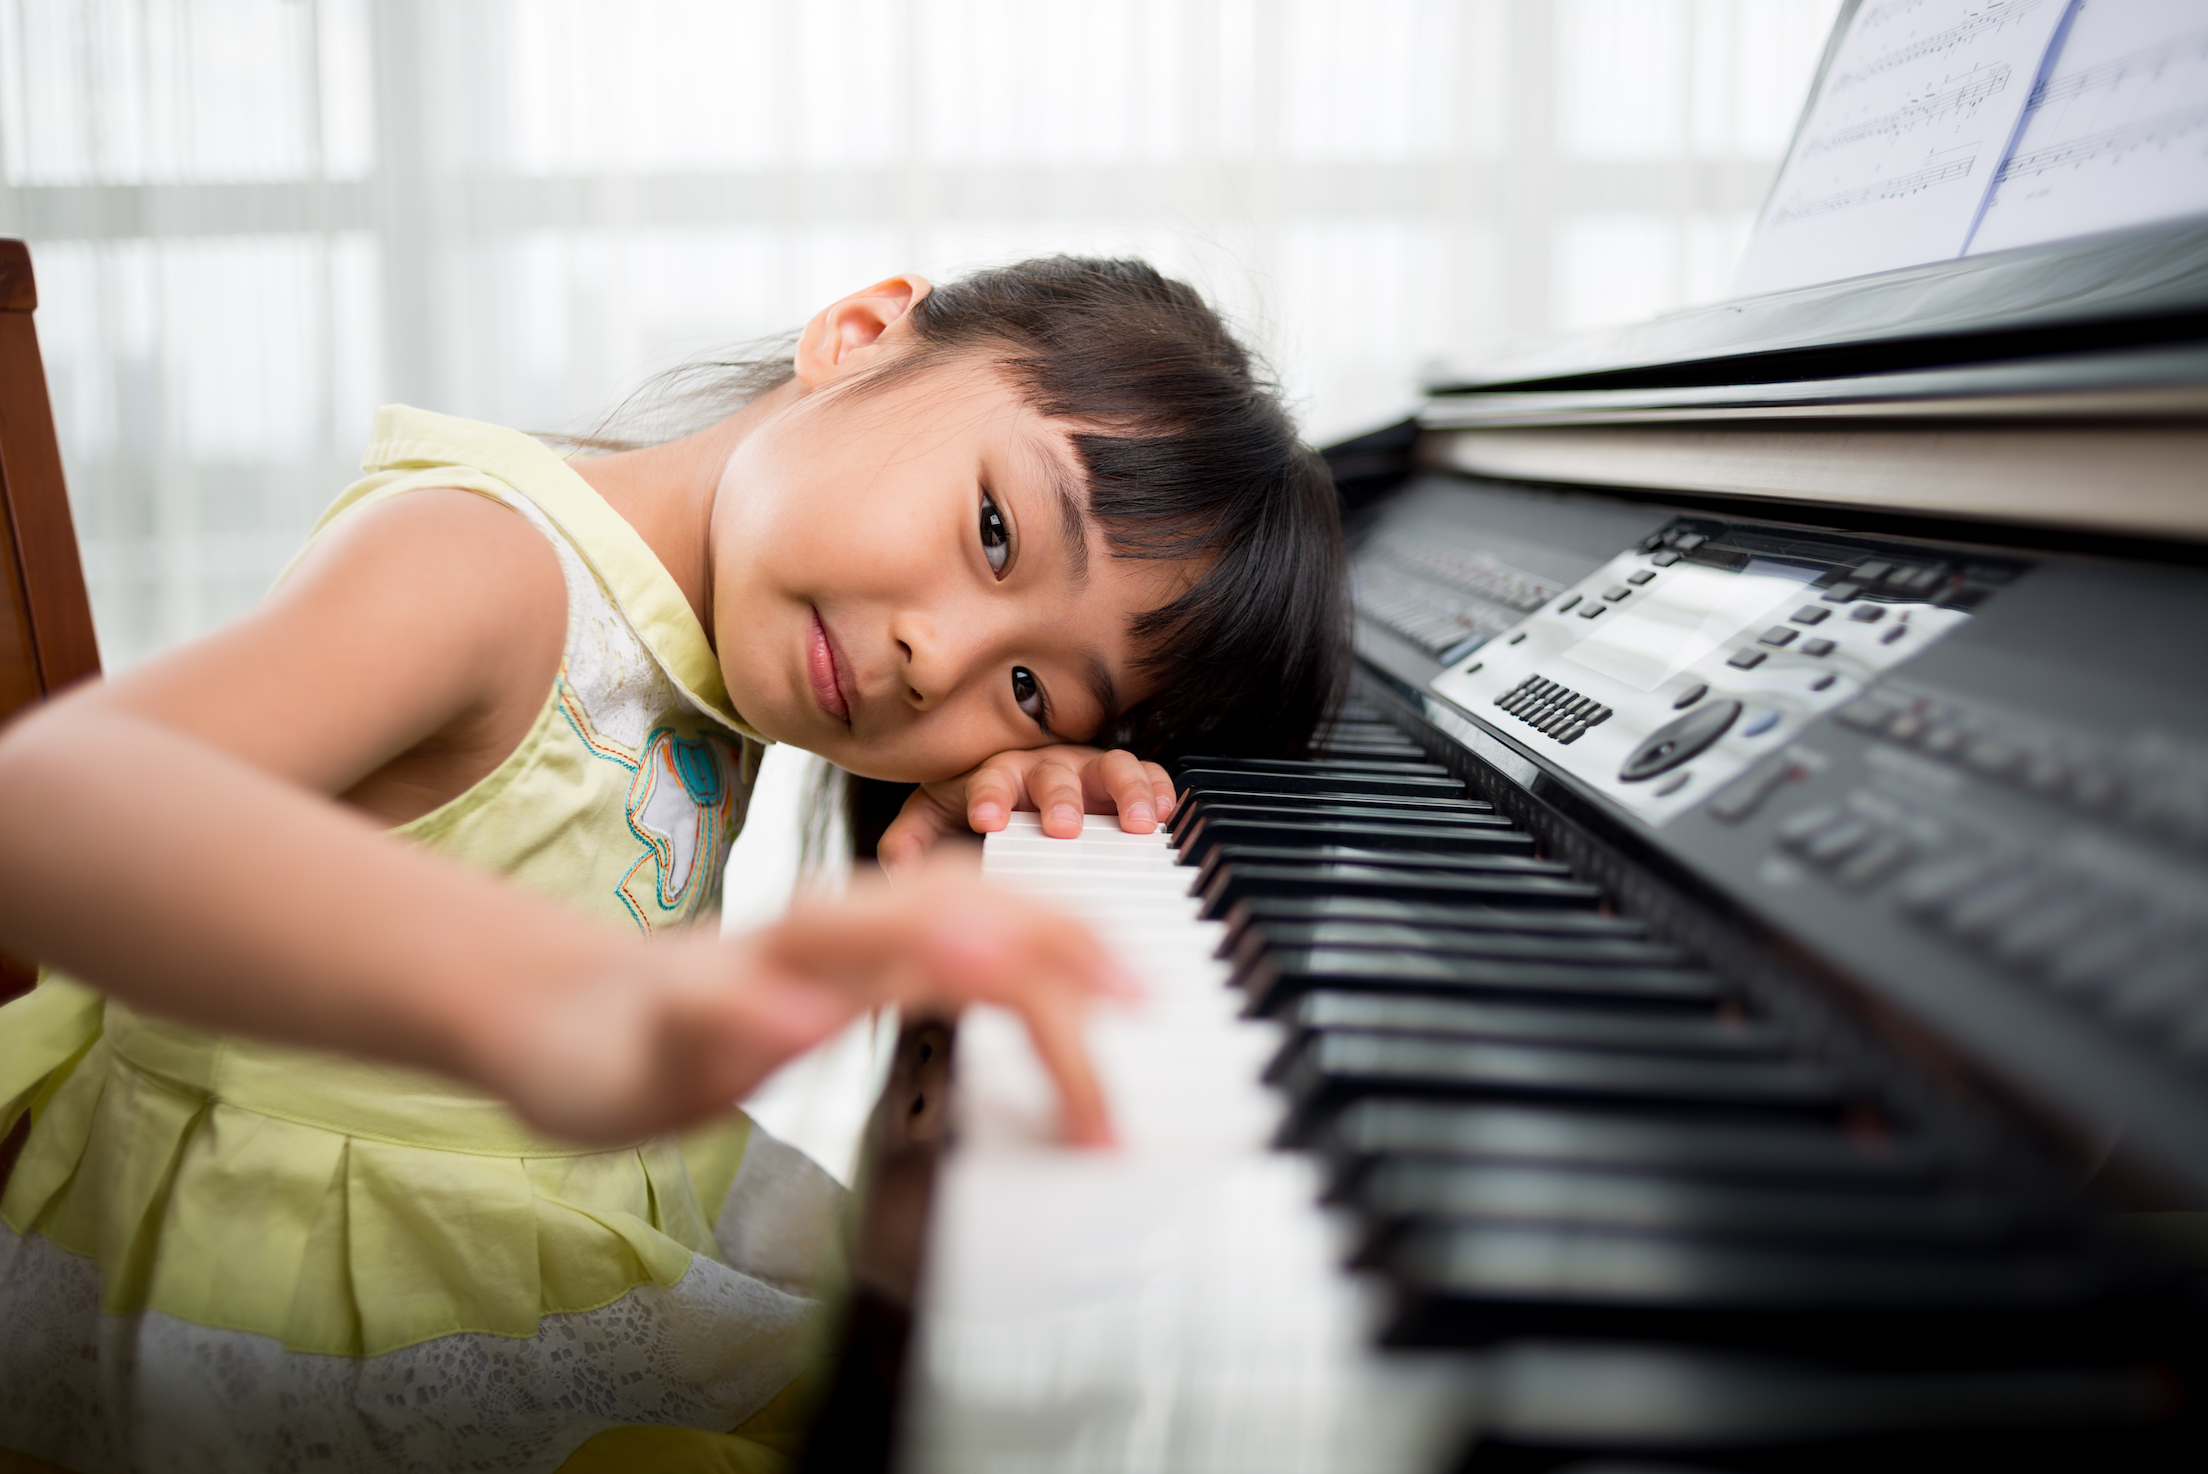 New research has found that children begin spontaneously practicing skills to prepare for their future at age 6.